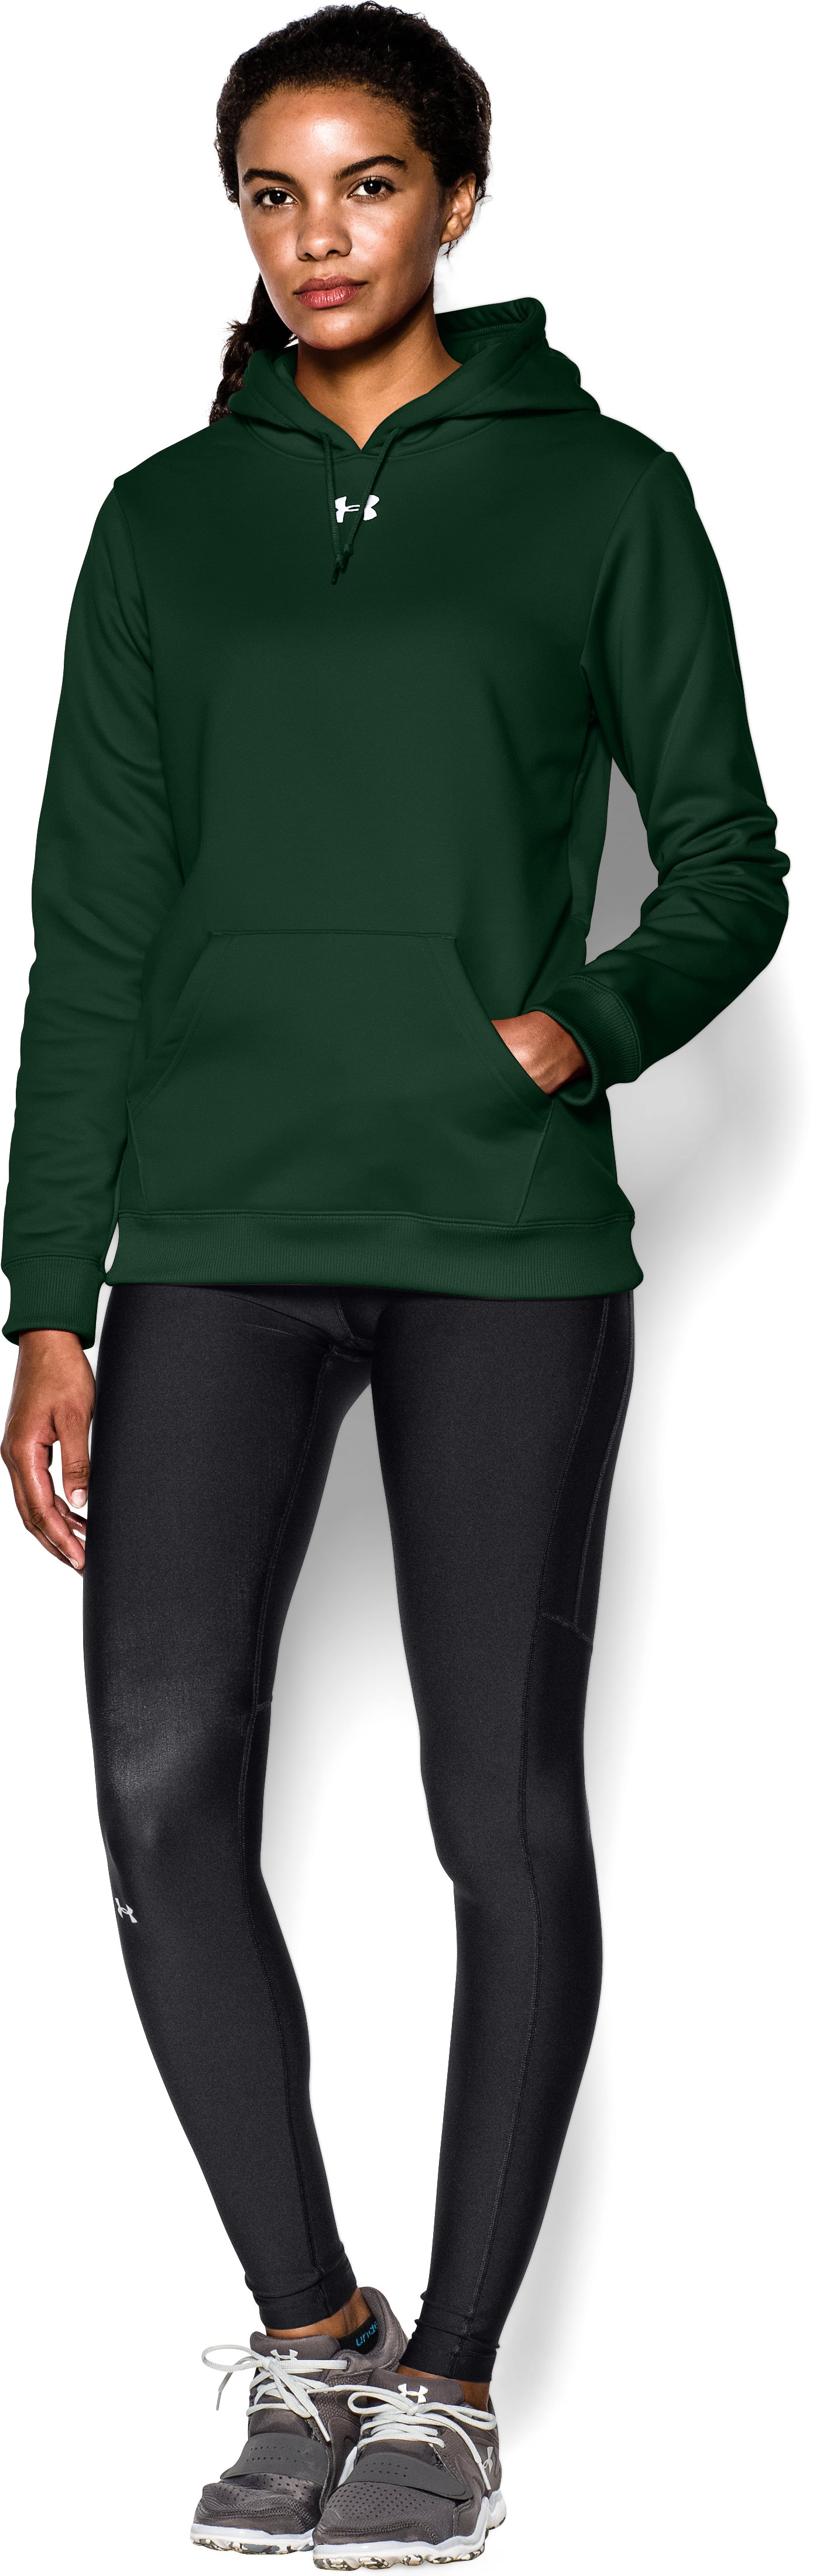 Women's Armour® Fleece Team Hoodie, Forest Green, zoomed image